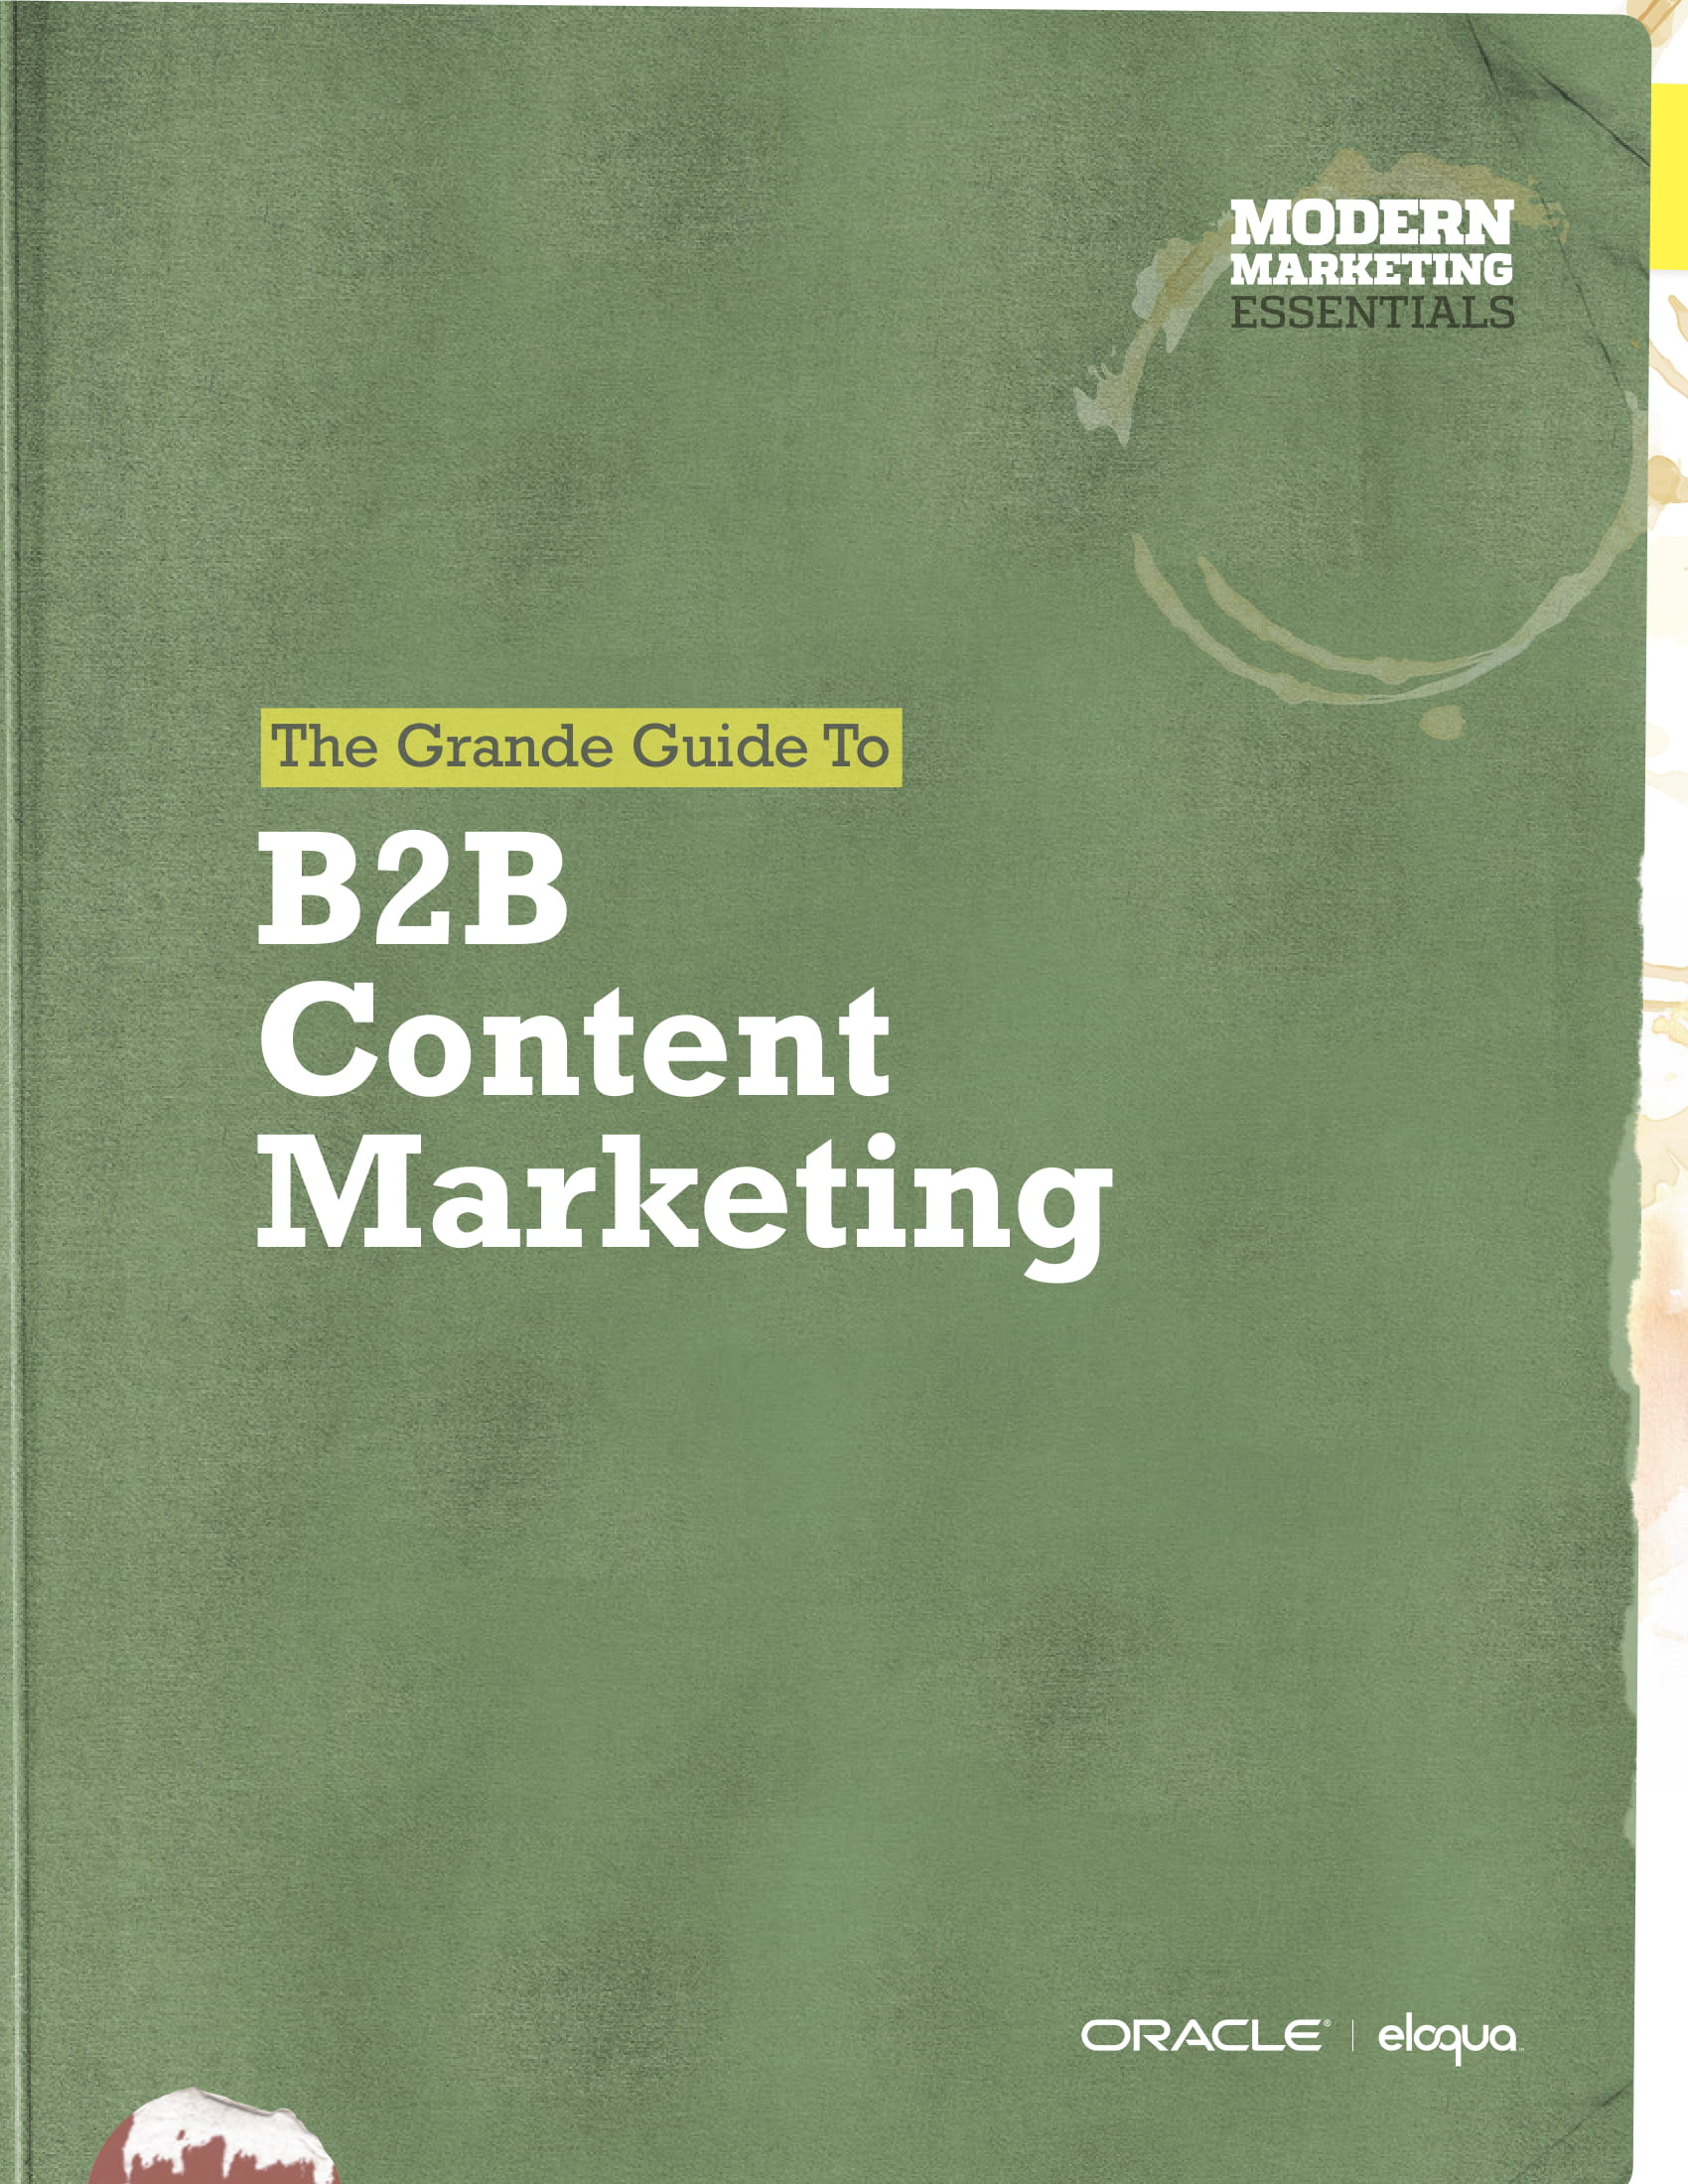 b2b content marketing for a business plan example 01